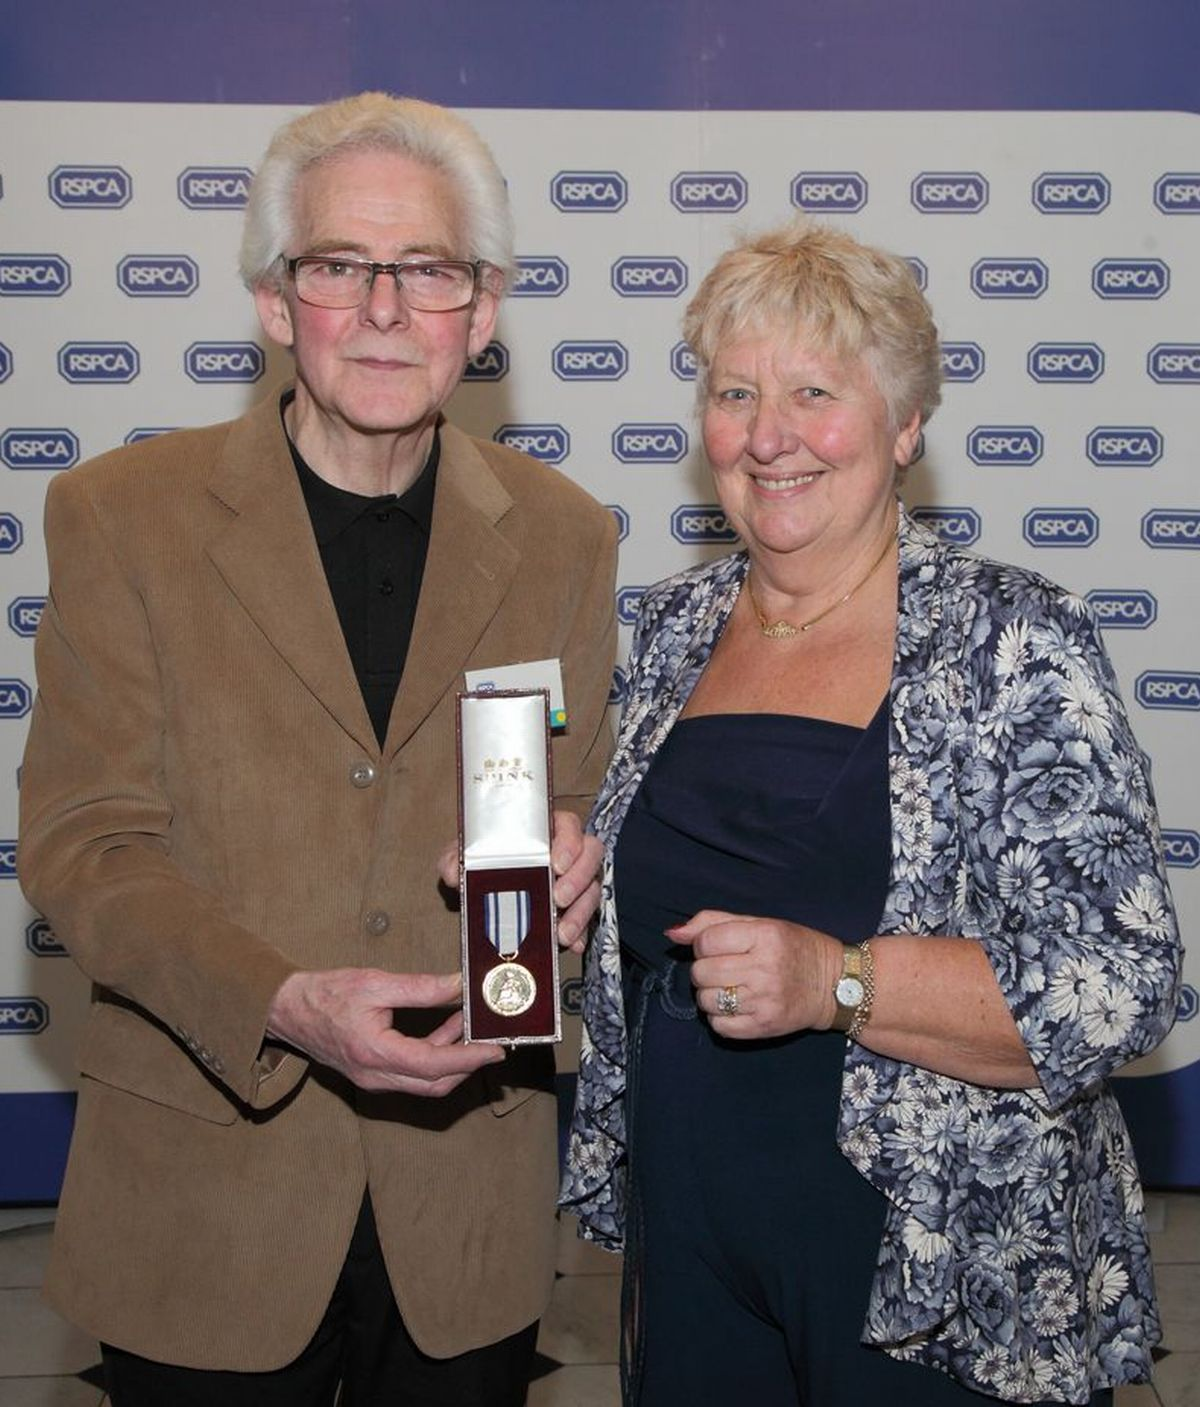 JOHN Bryant with RSPCA trustee Maggie Baker at the awards ceremony.